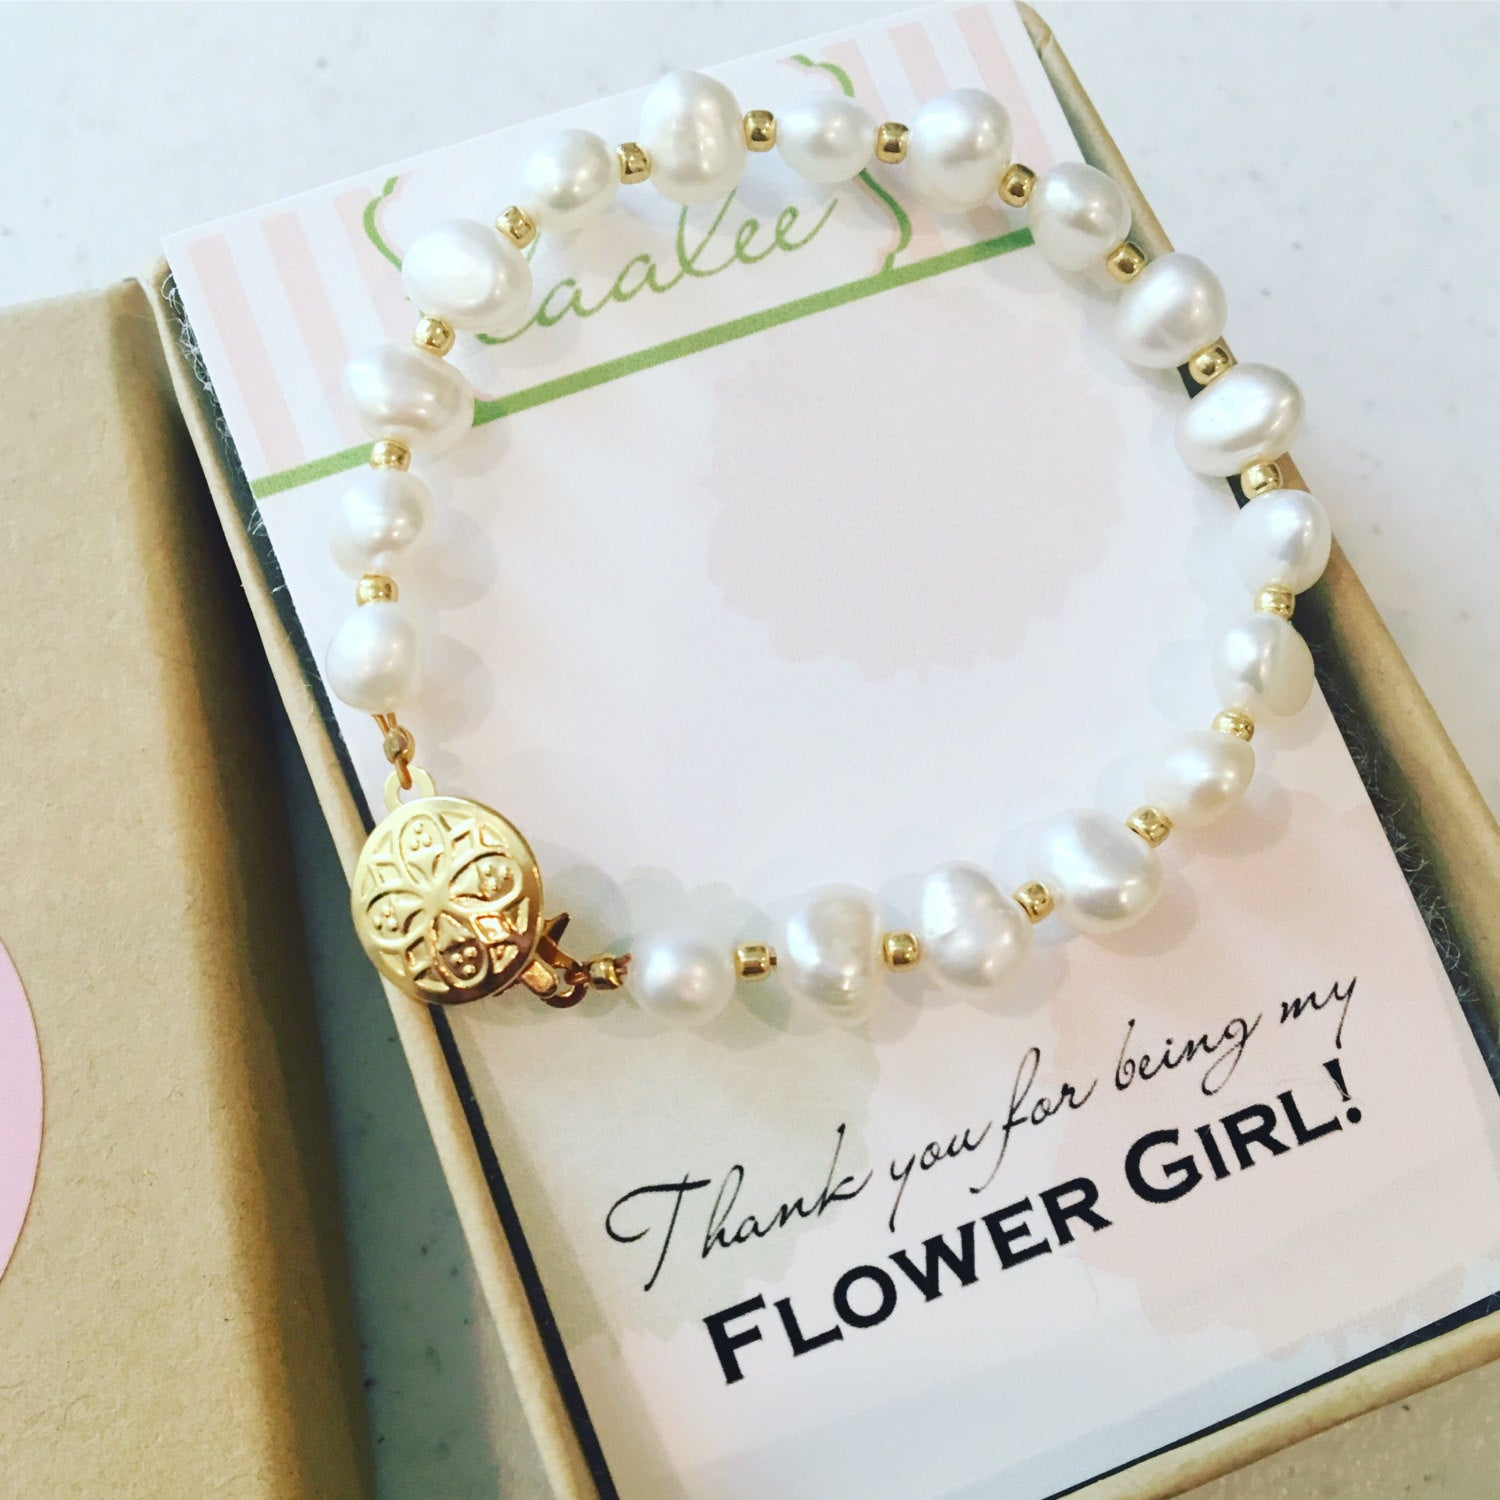 As seen on Instagram - Gold Freshwater Pearl Bracelet flower girl gift